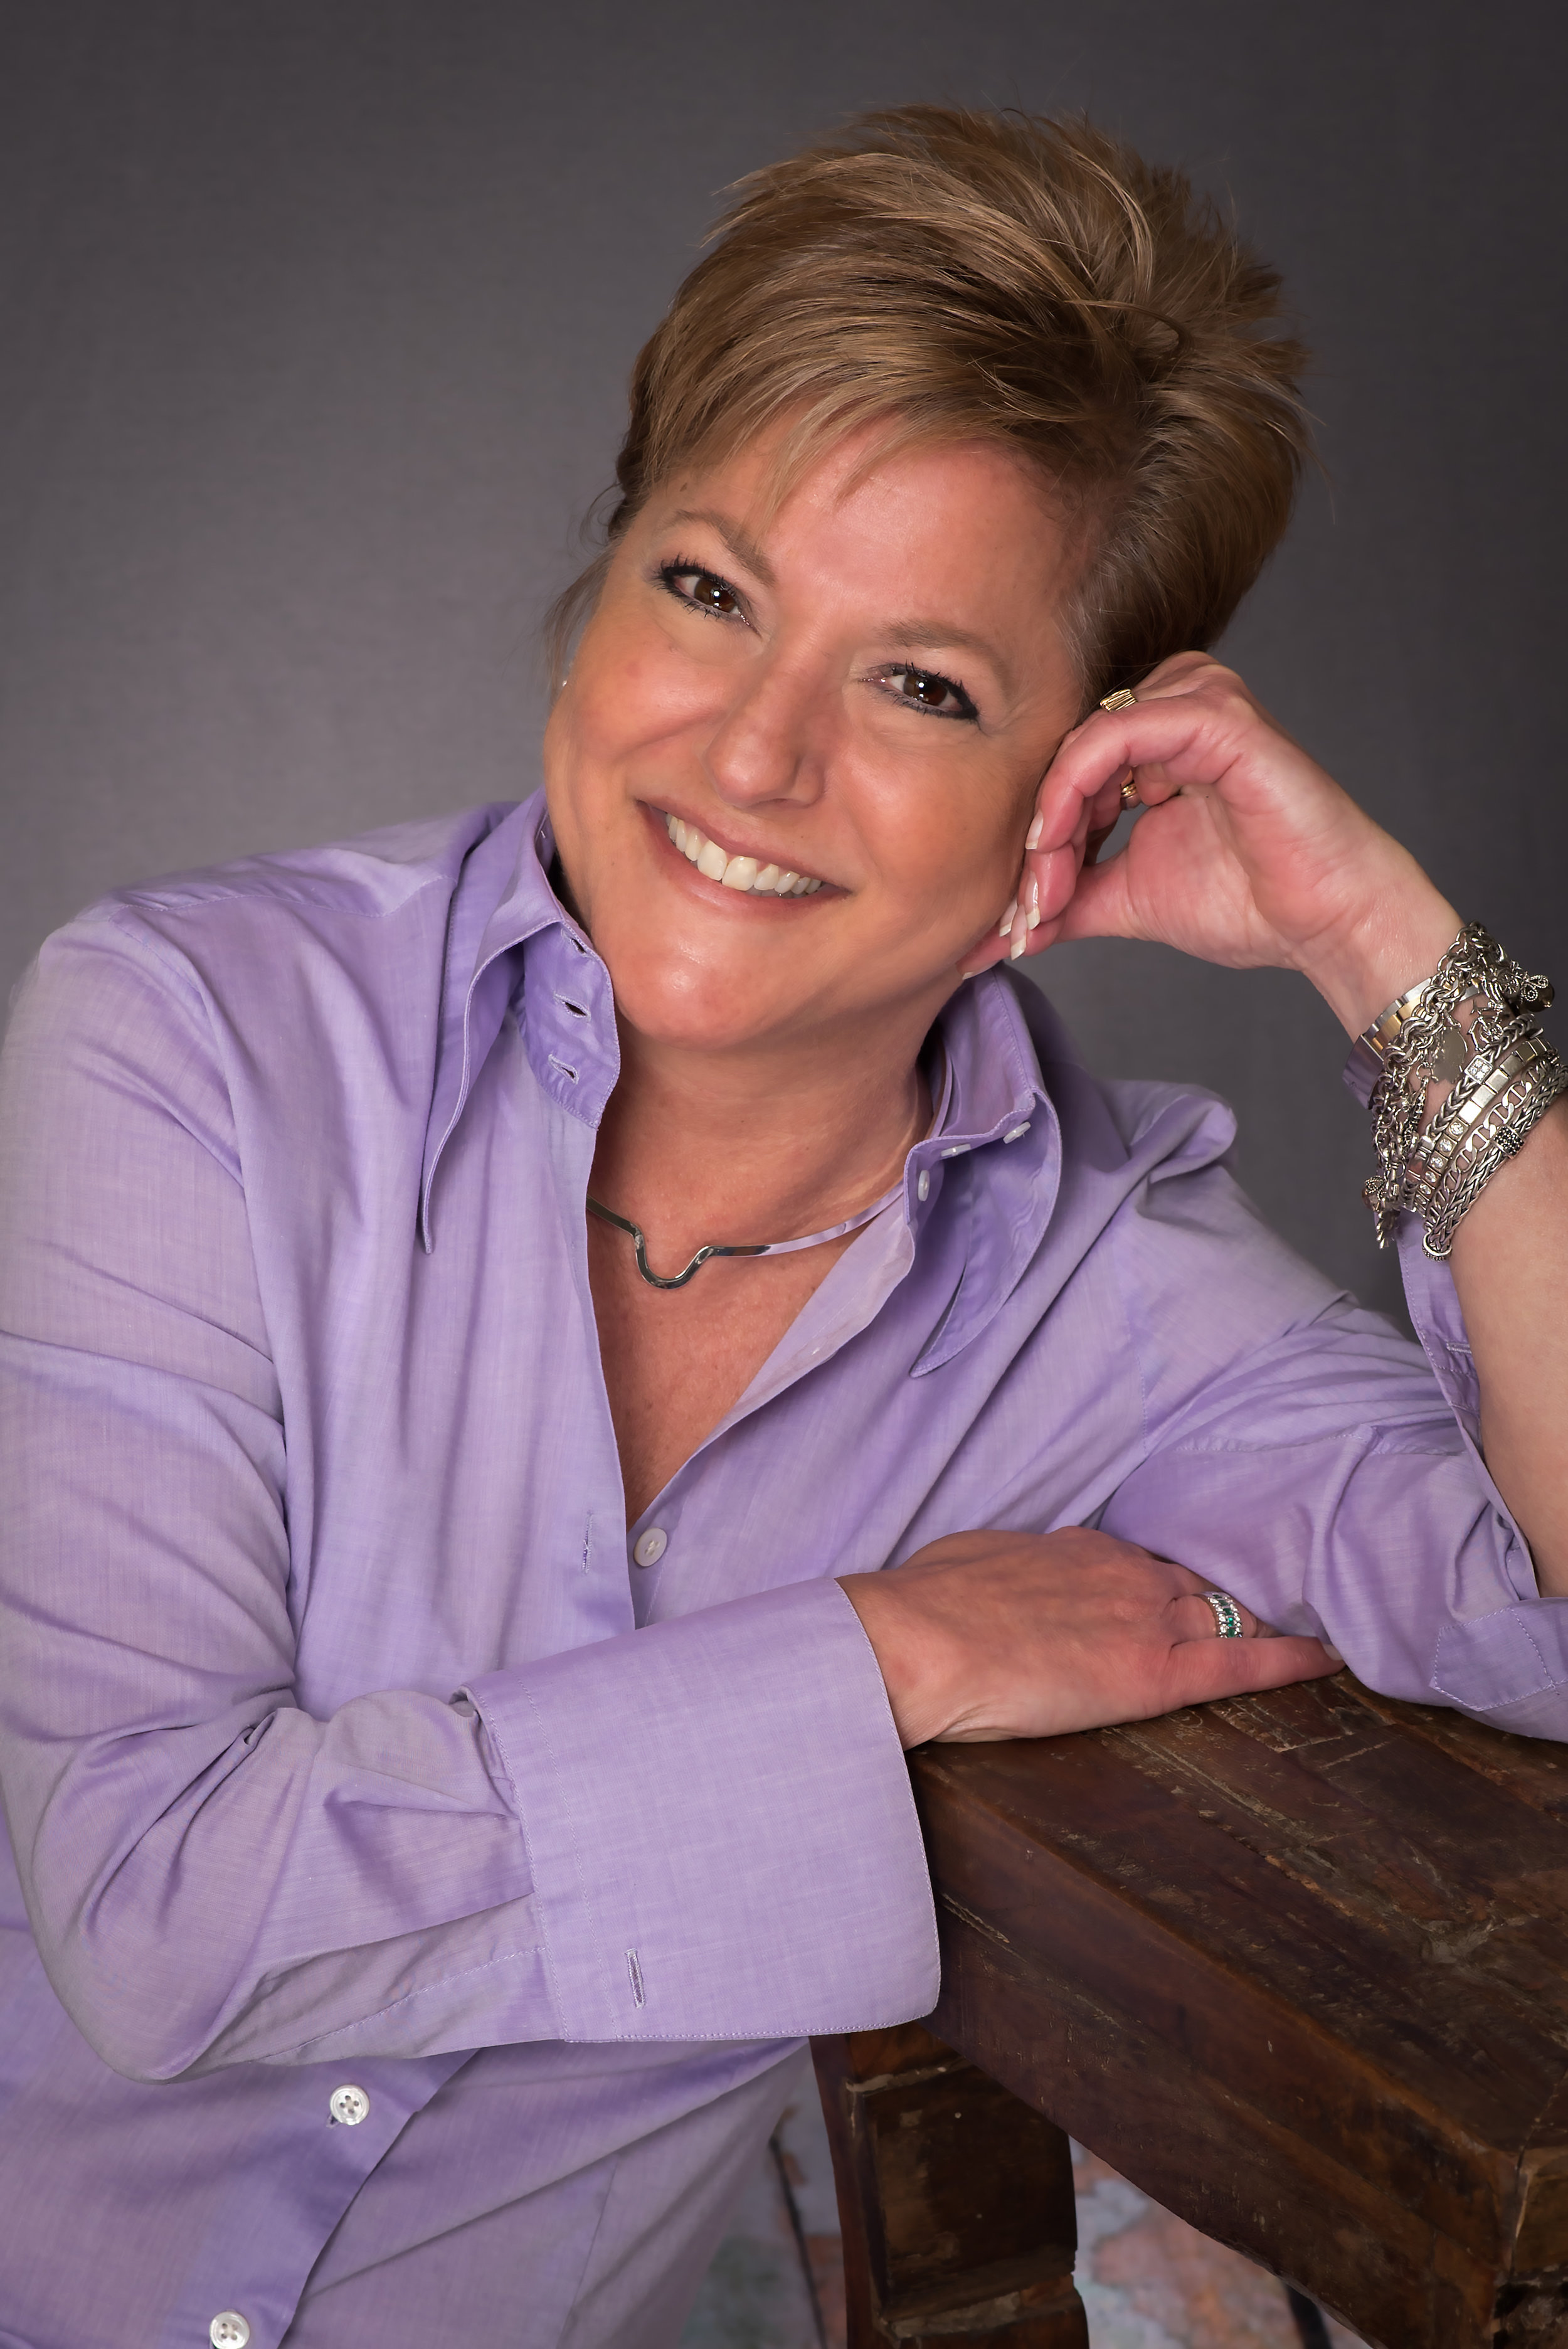 phyllis l trower - designing performance strategies that transcend ordinary results